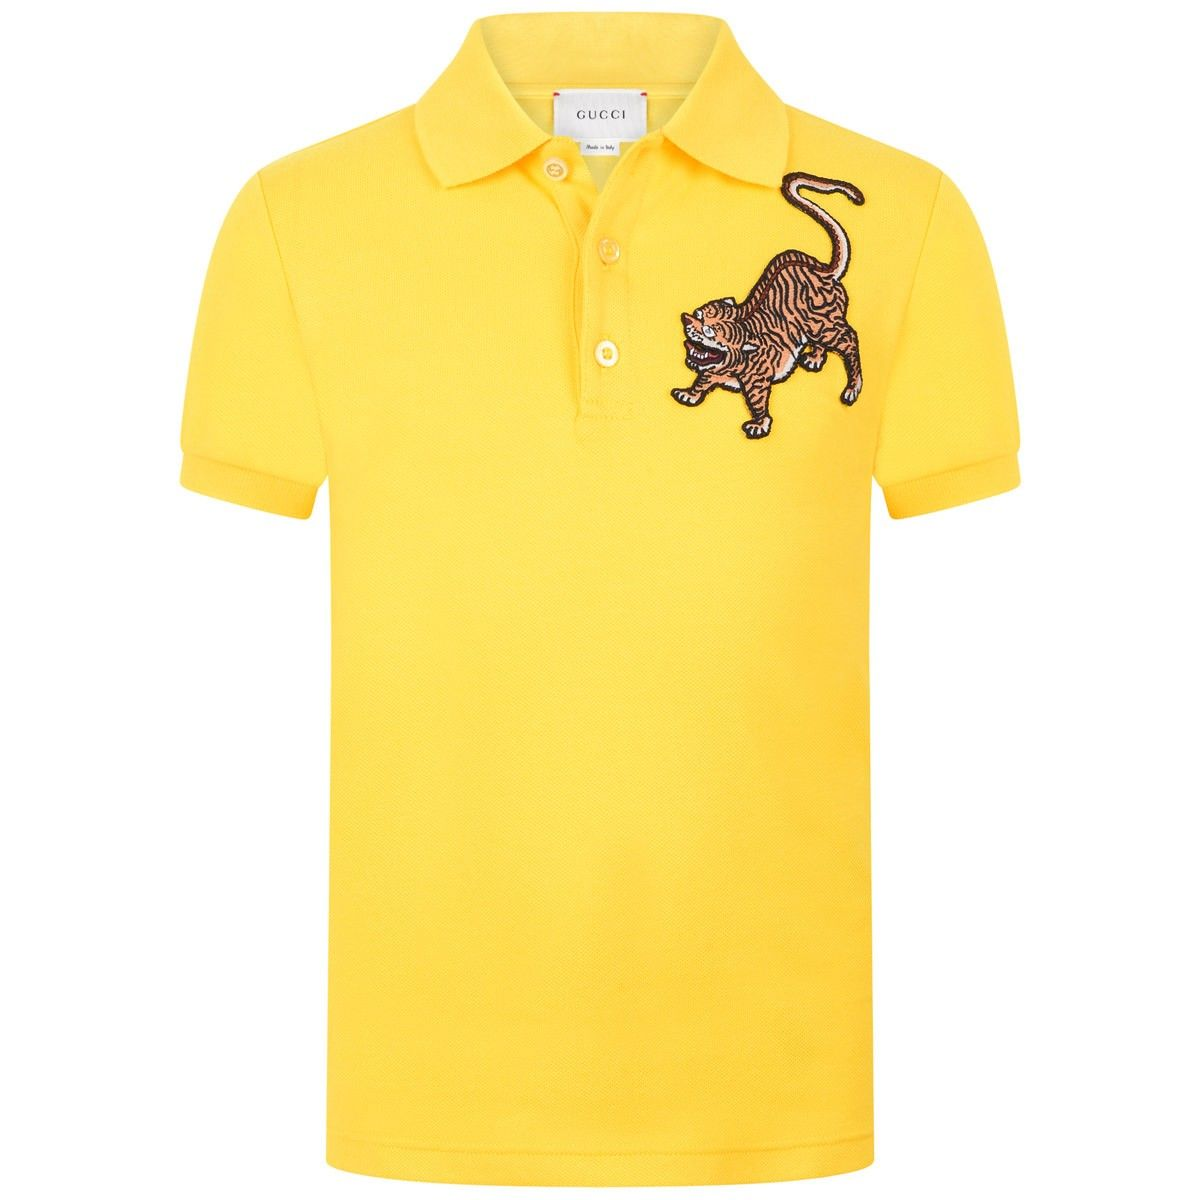 cb6629f03 GUCCI Boys Yellow Tiger Polo Top | Gucci Kids SS16 | Polo, Polo tees ...